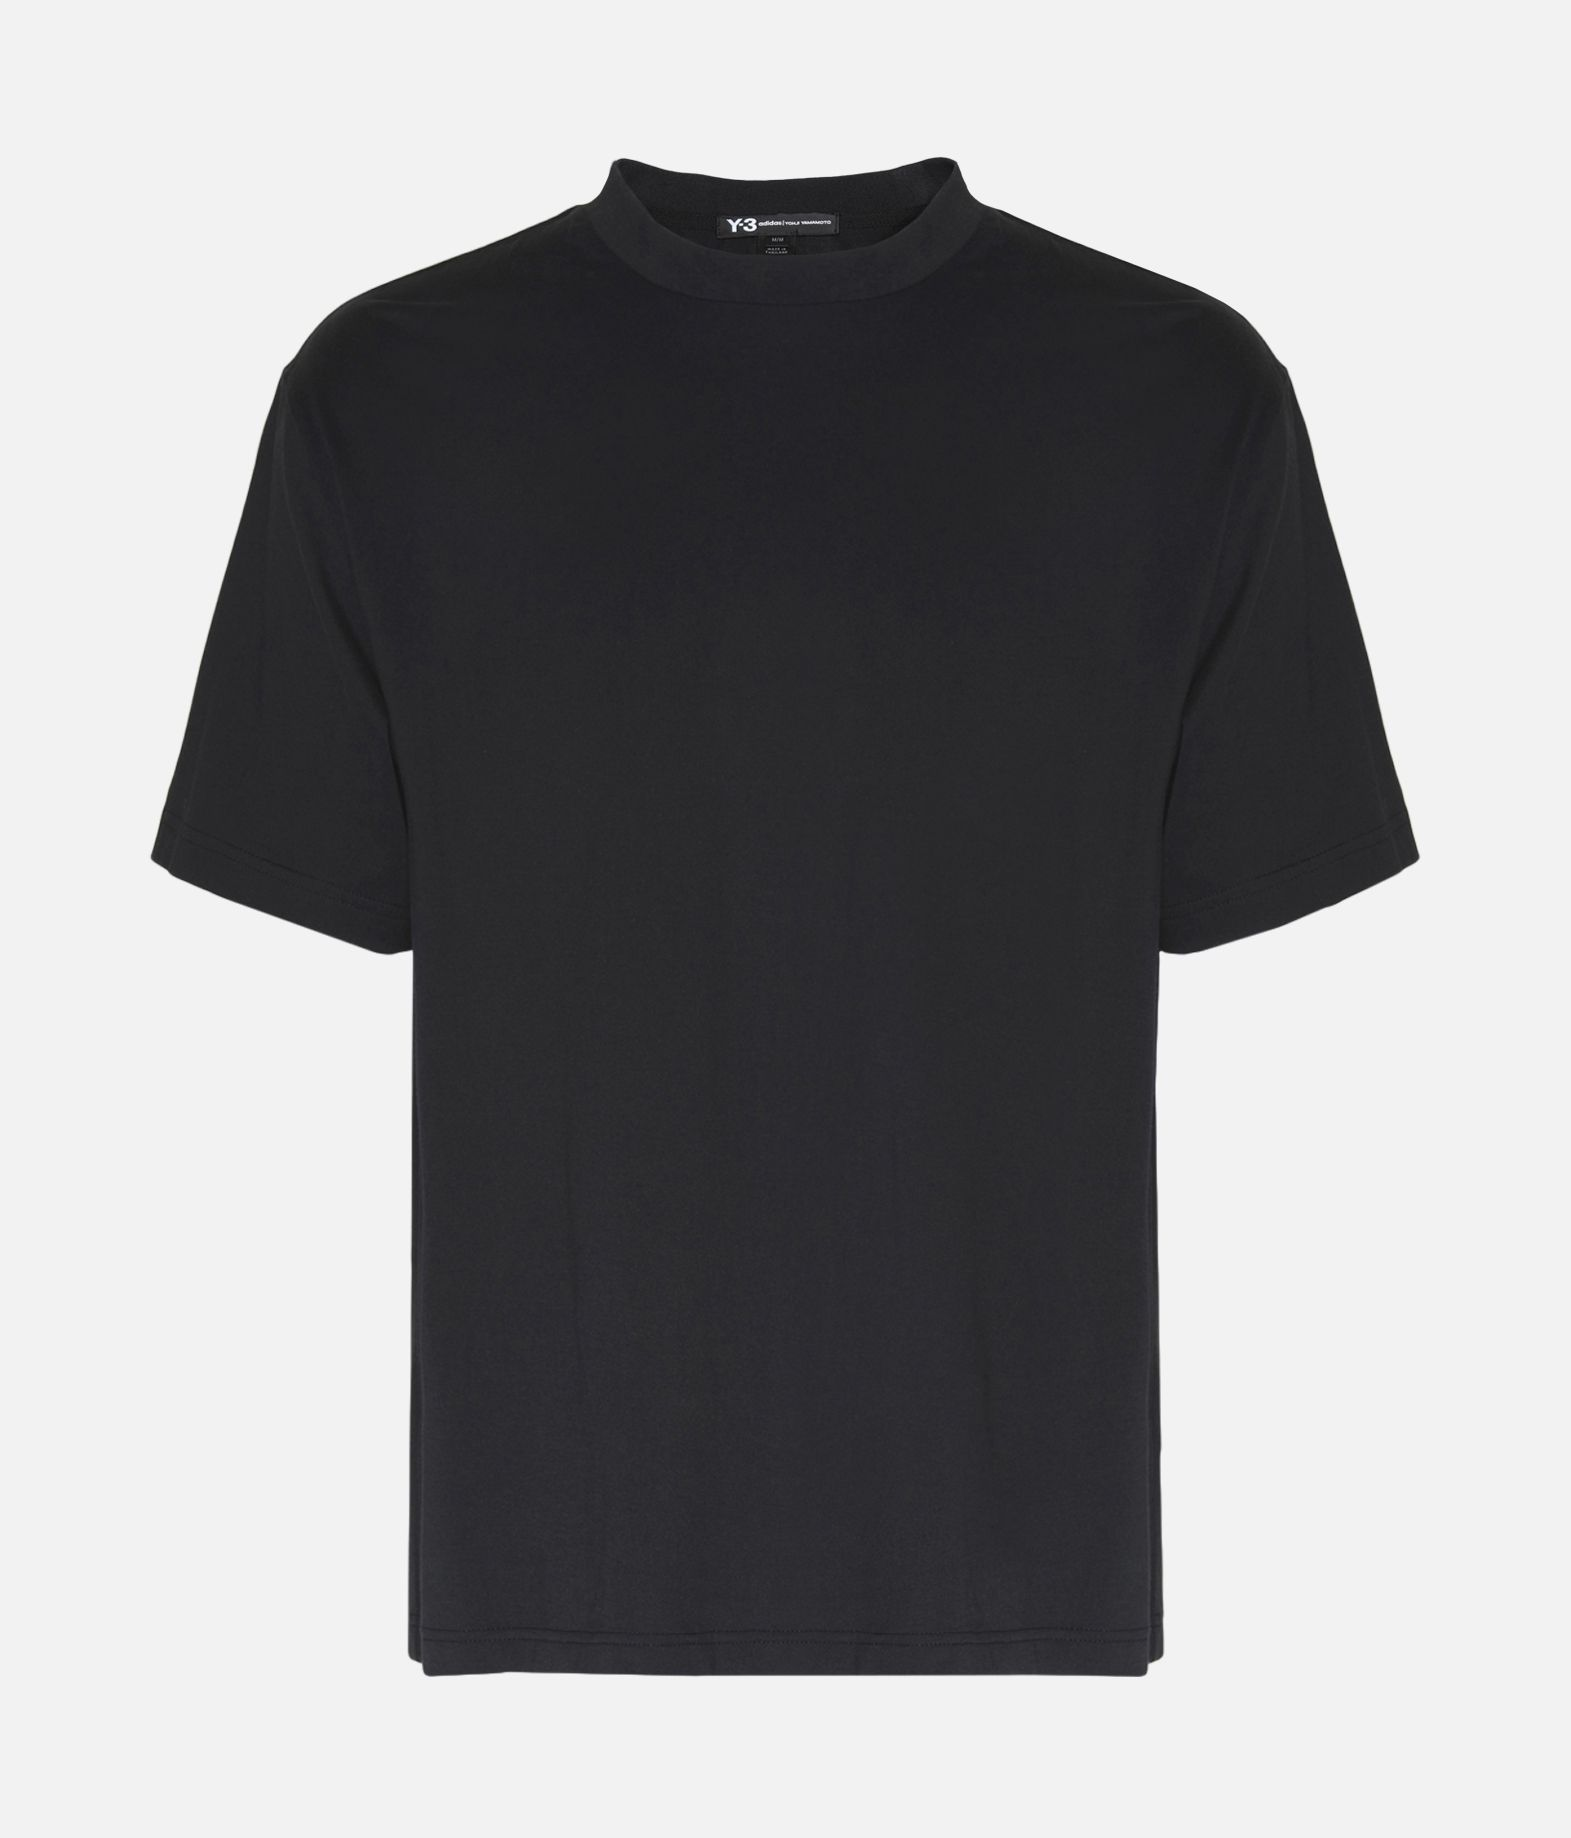 Y-3 Y-3 Signature Graphic Tee Kurzärmliges T-shirt Herren f